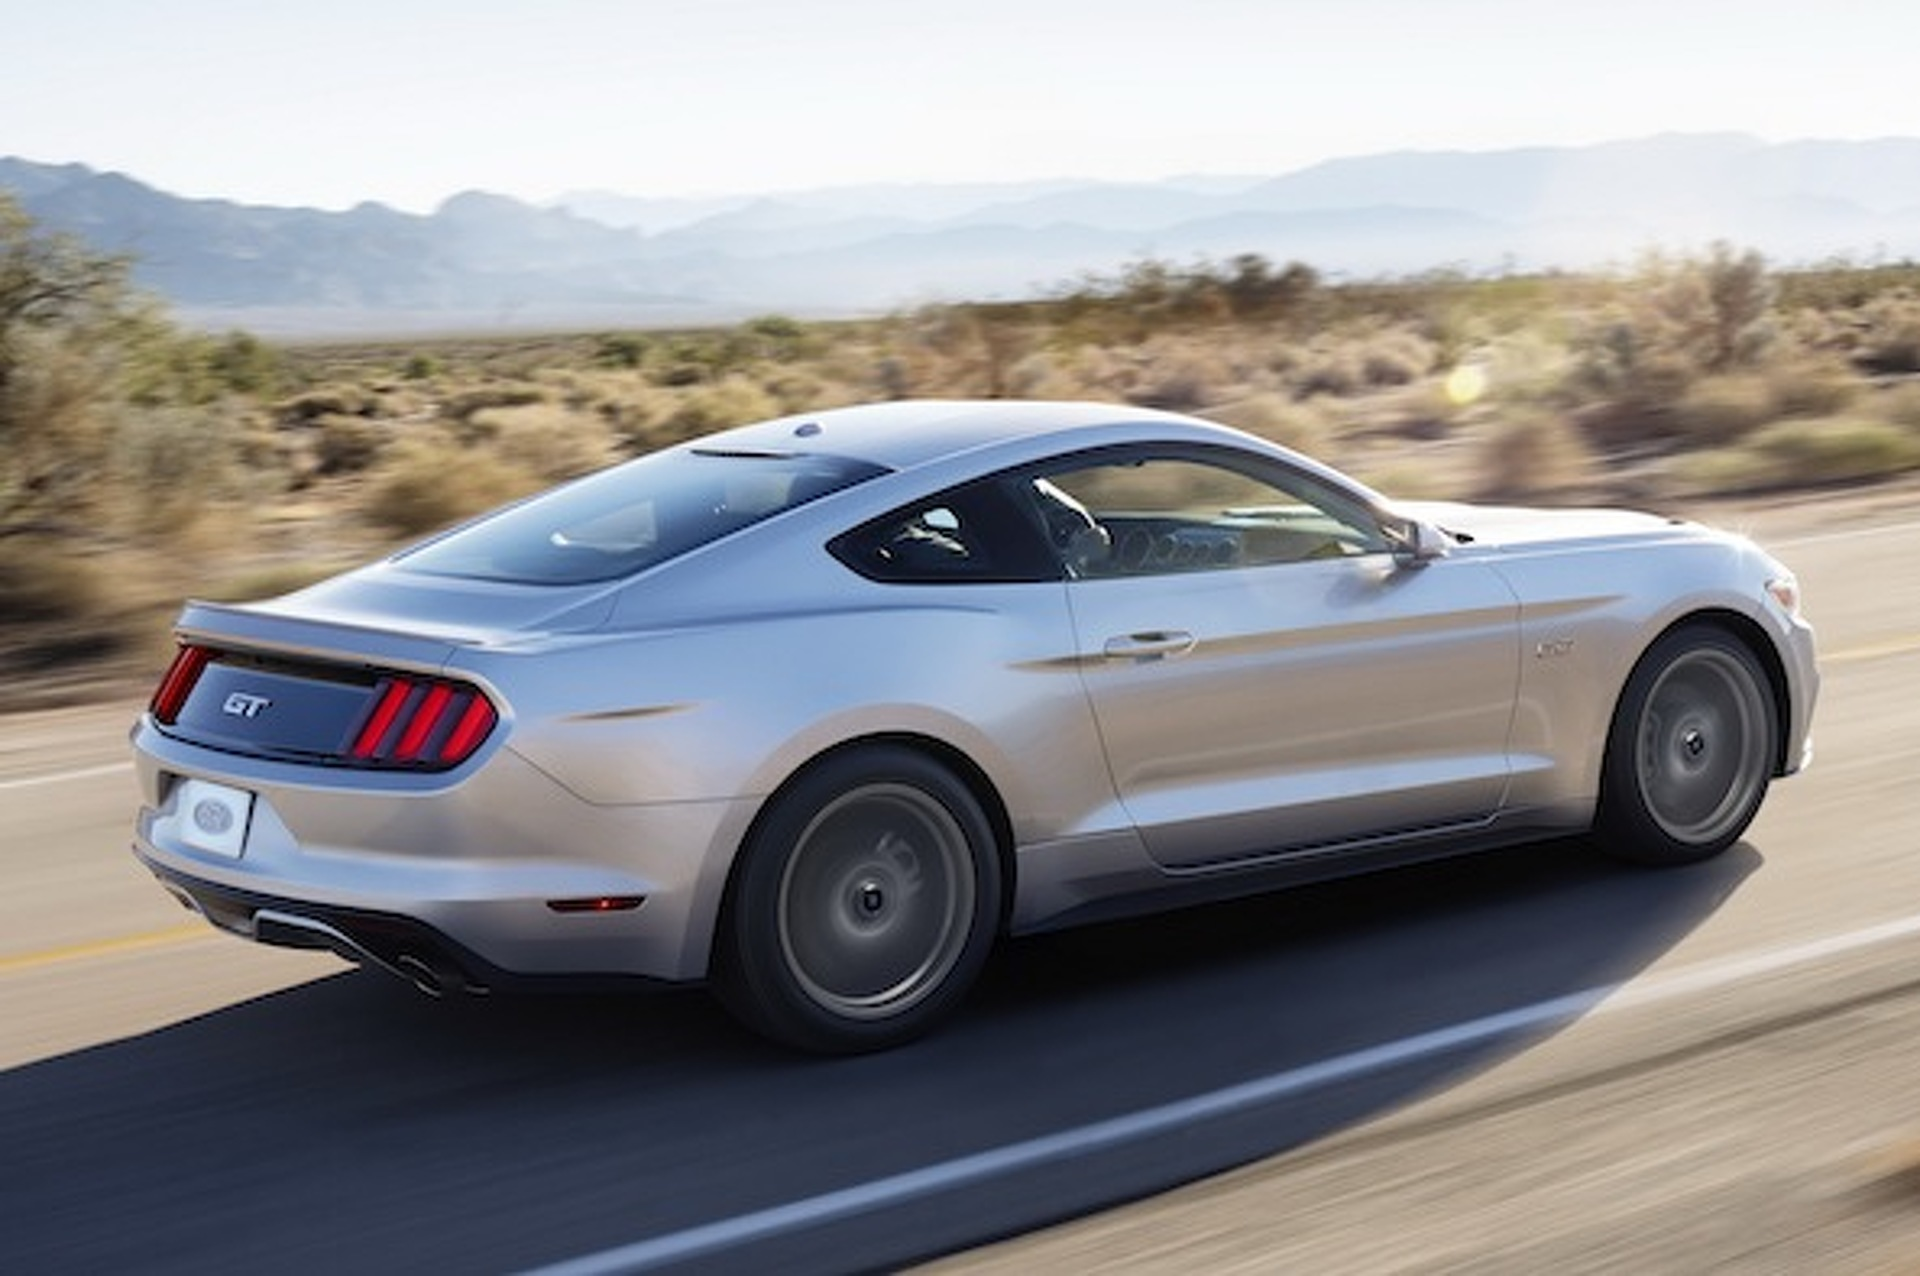 Very First 2015 Ford Mustang GT Headed to Auction